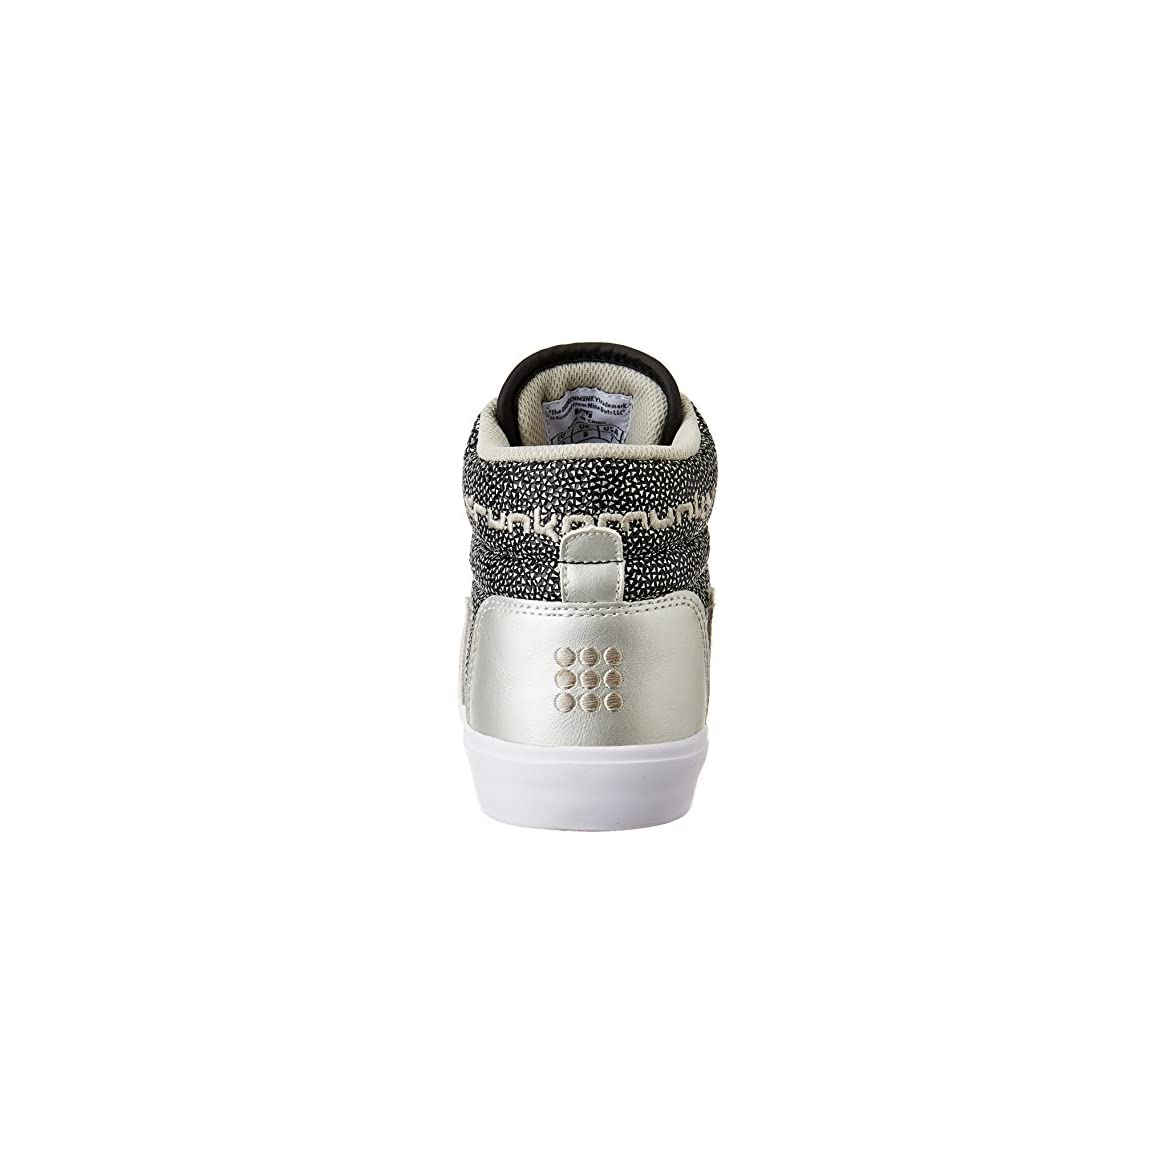 Drunknmunky Sneakers Zeppa Silver Scarpe Donna Boston Galaxia 307 40